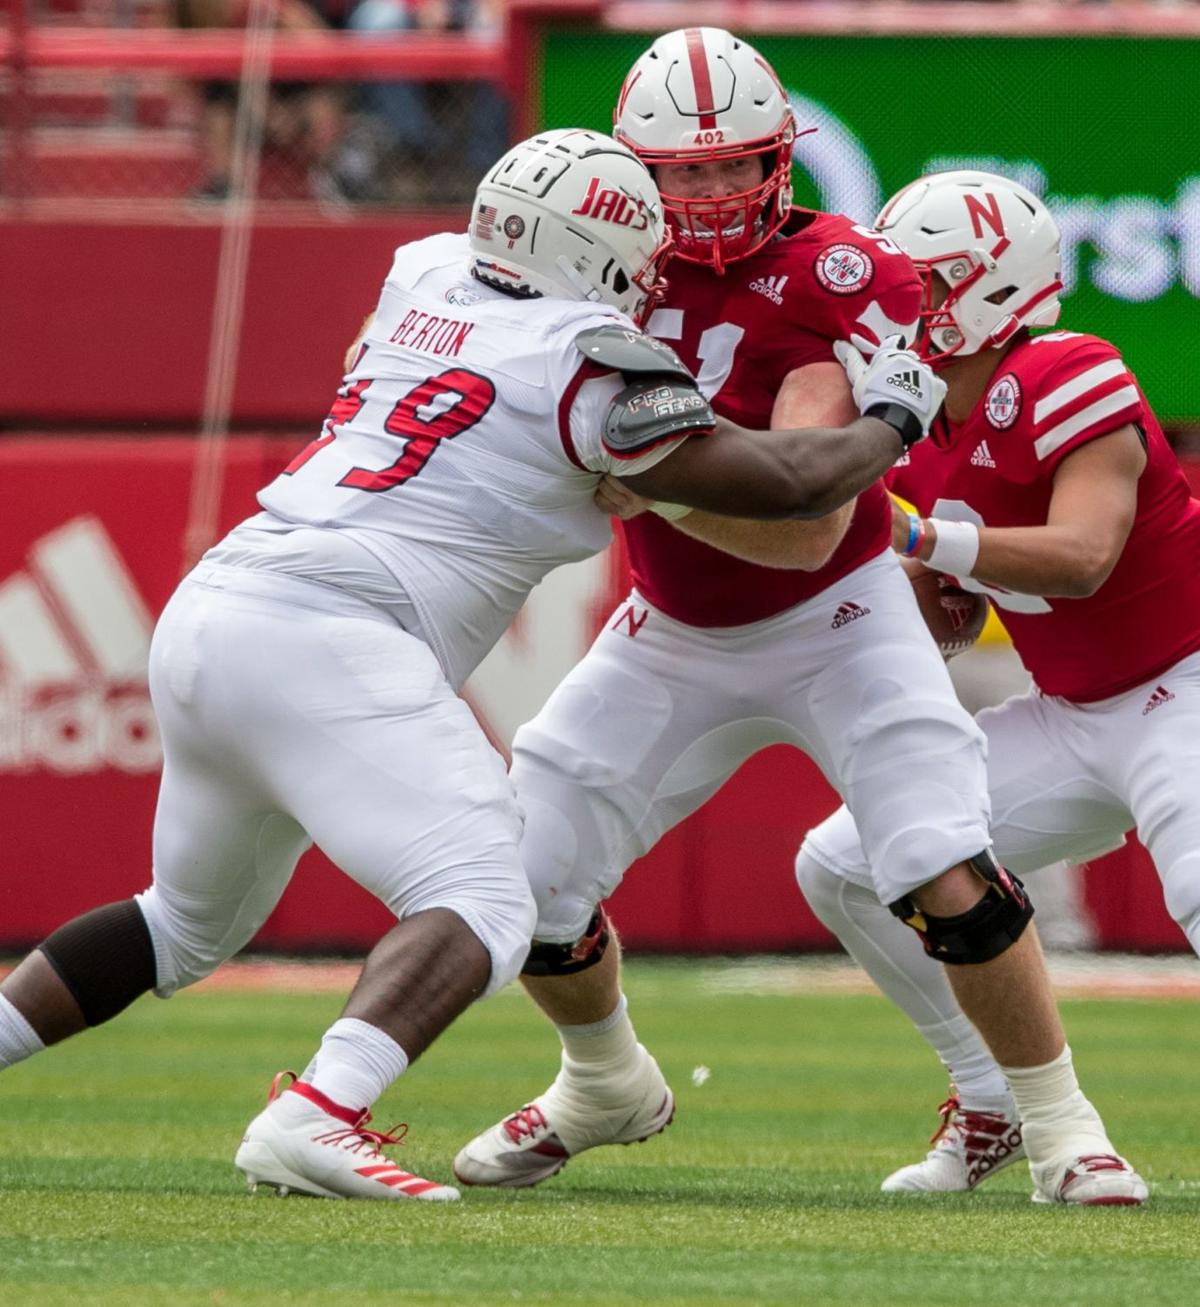 Oh, snap: Nebraska's offensive line looking to improve after shaky game one